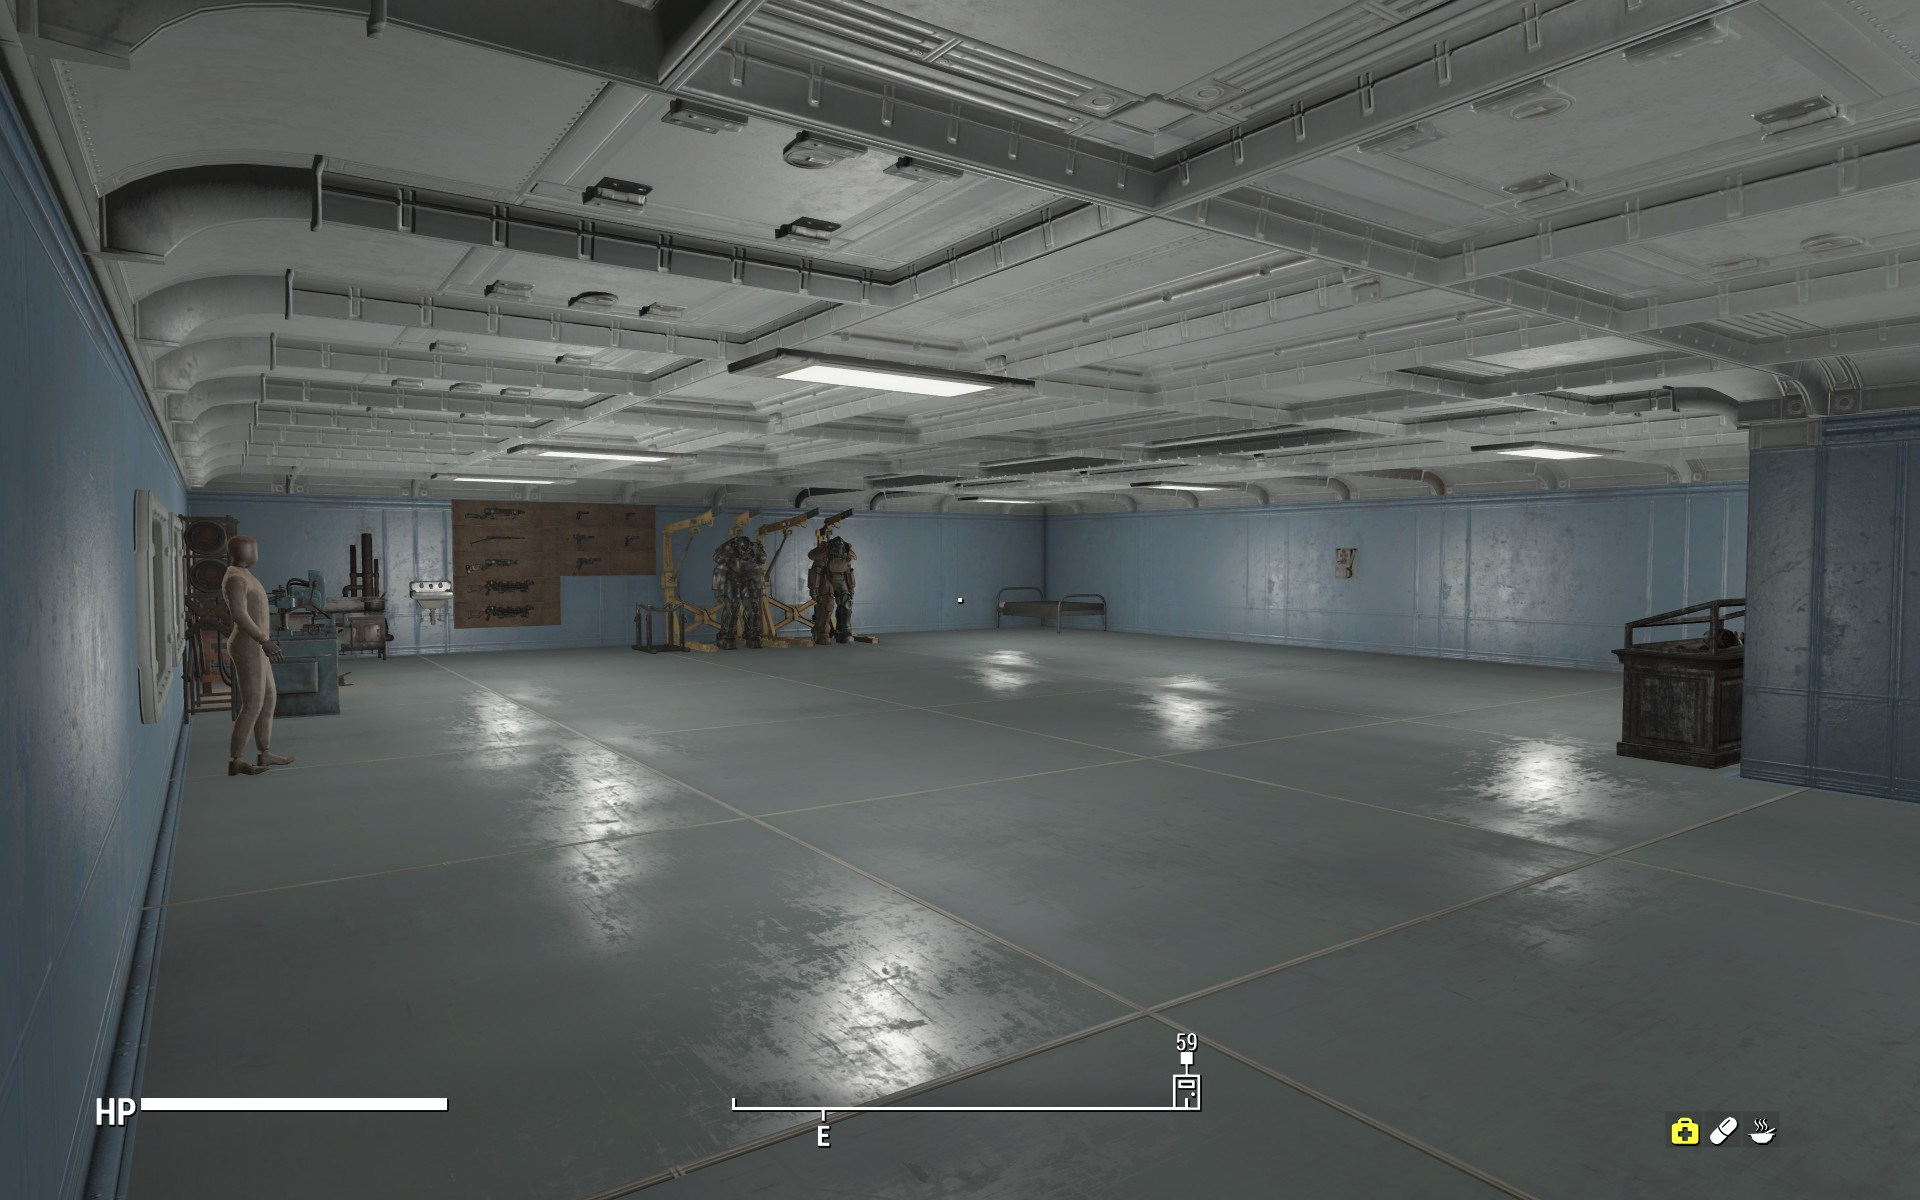 How To Use Wall Lights Fallout 4 : Vault-Tec SimuSun Lighting at Fallout 4 Nexus - Mods and community